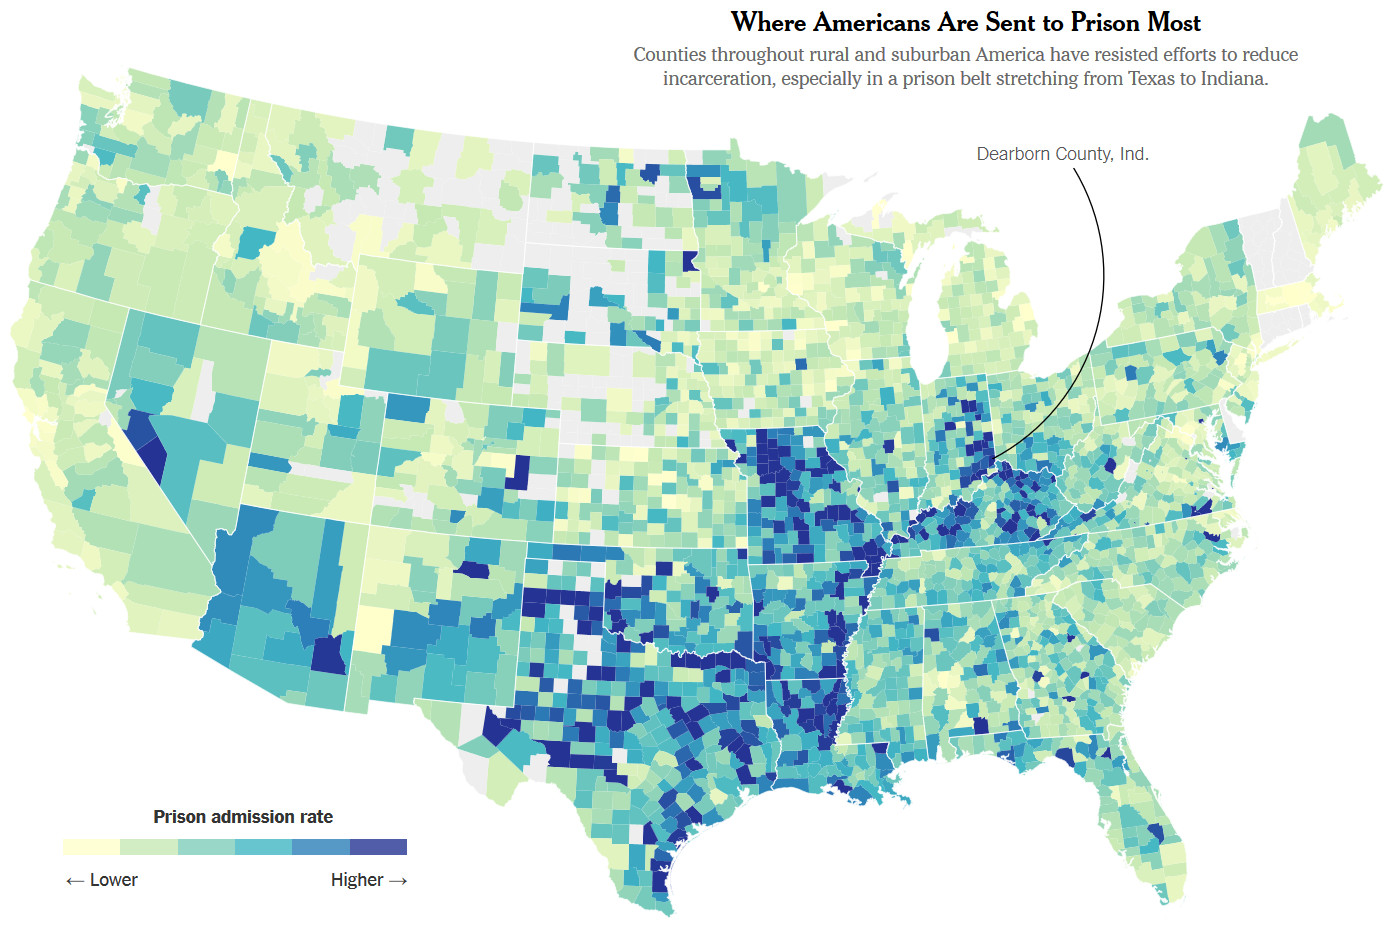 Where Americans are sent to prison most?